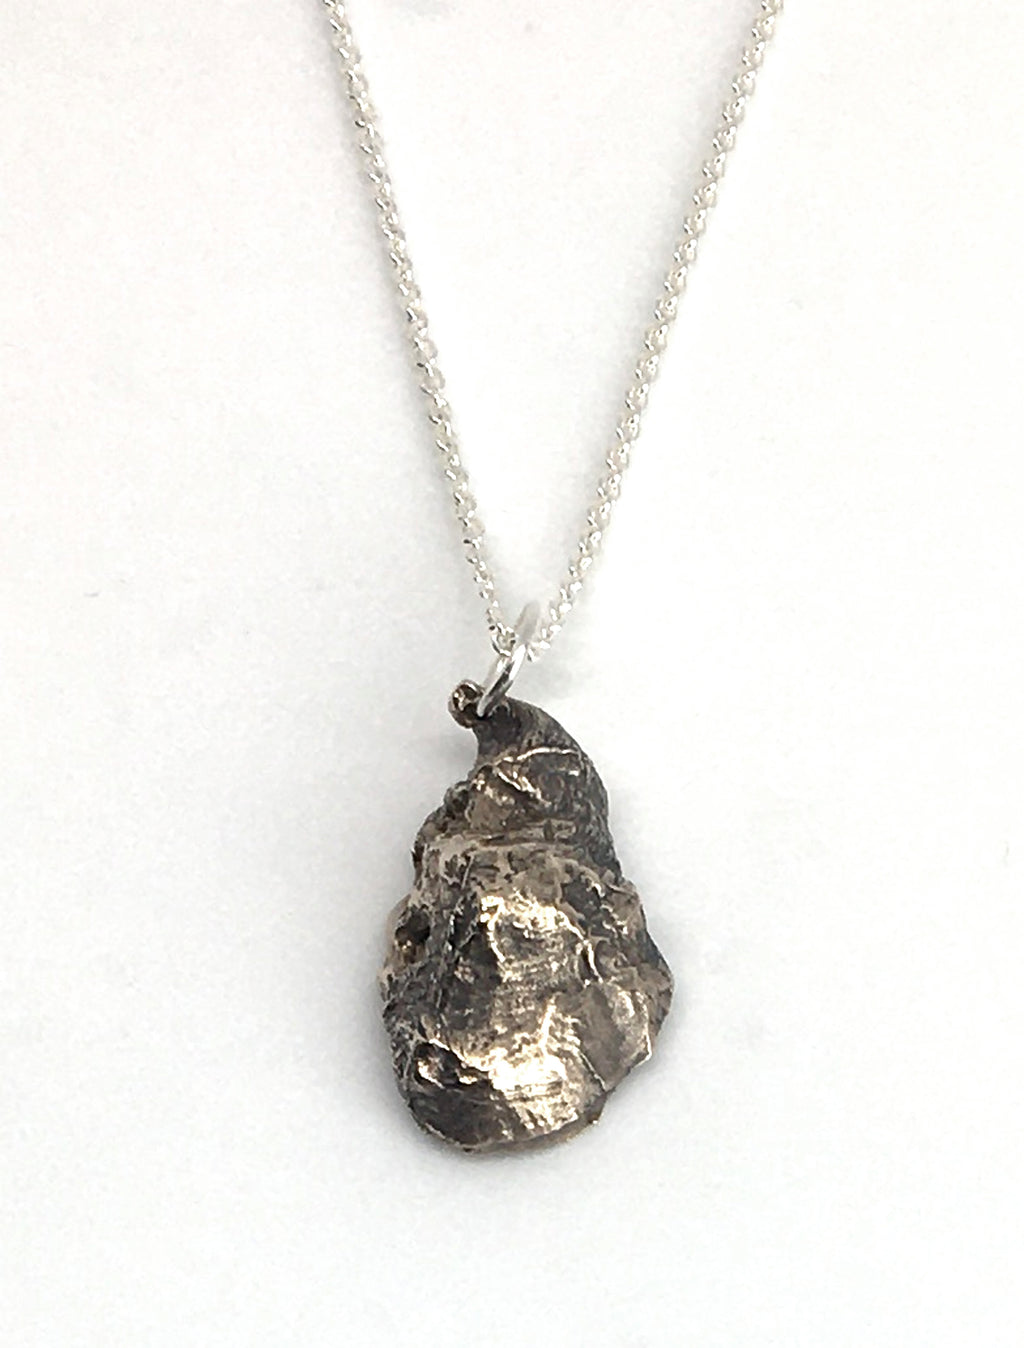 sterling silver oyster shell pendant necklace on sterling silver cable chain